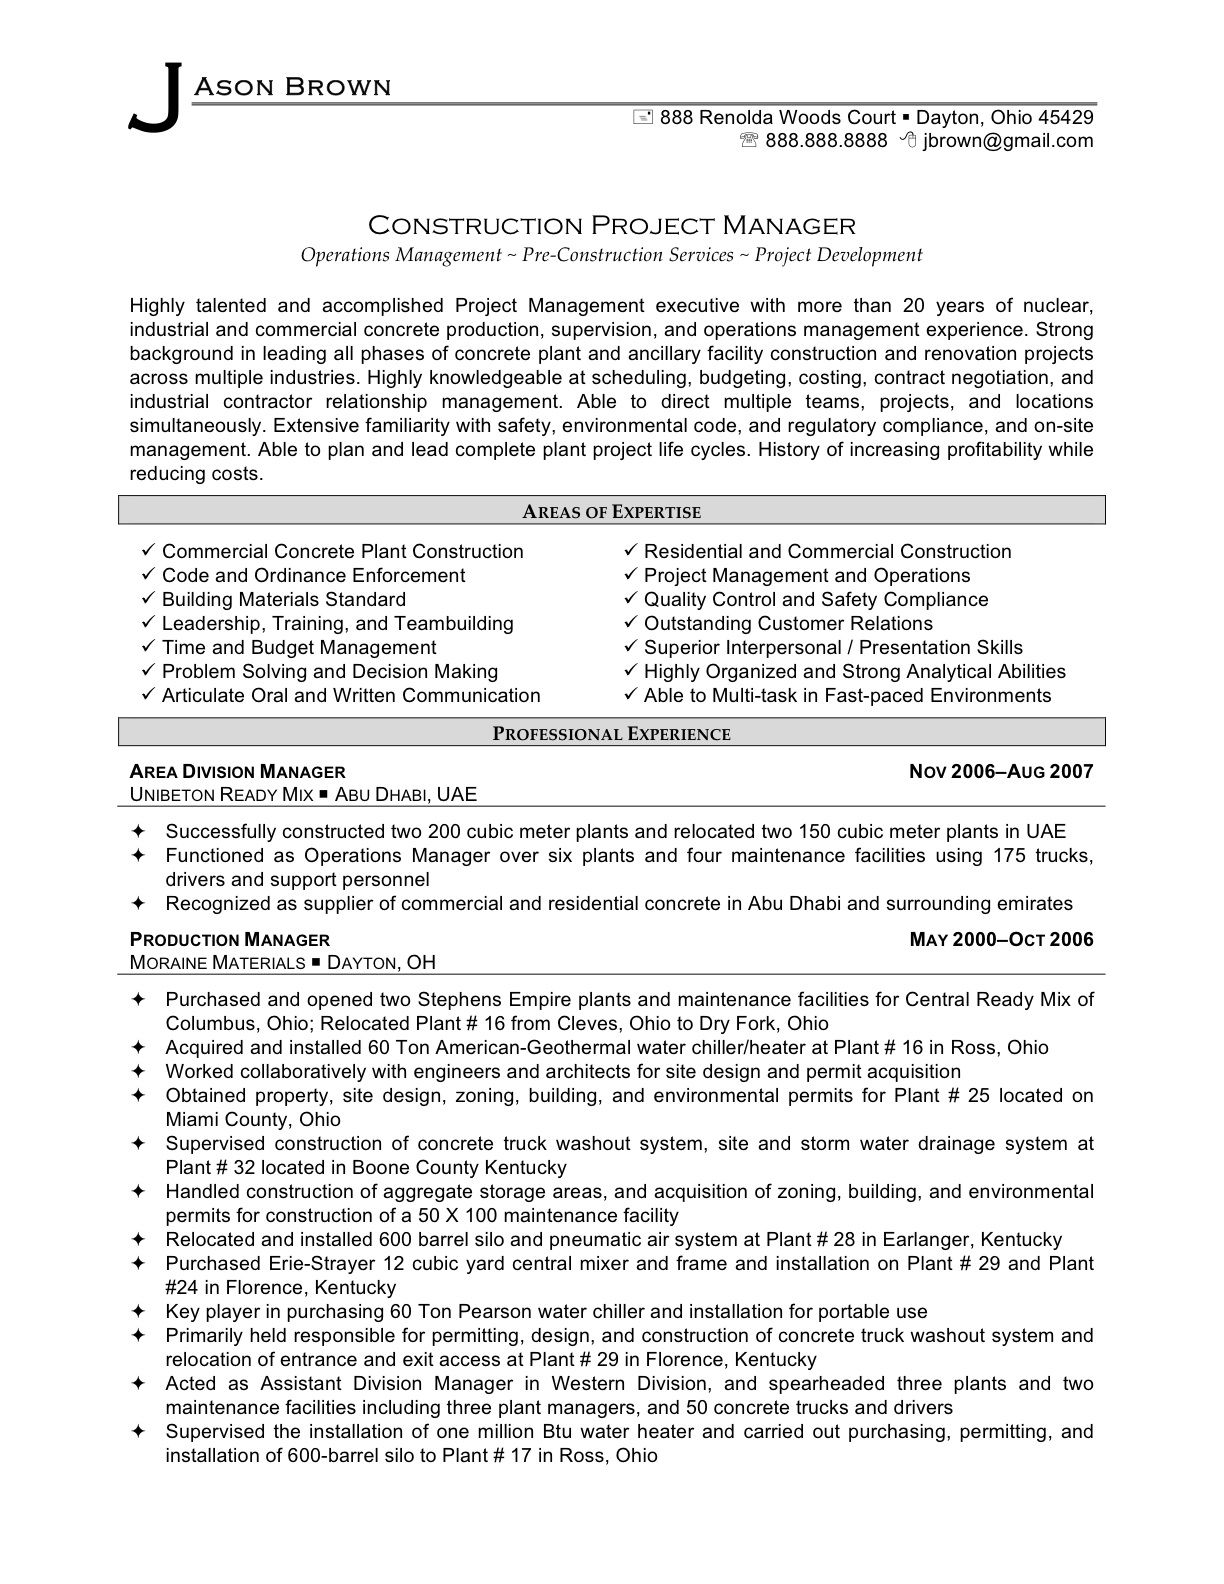 Professional Resume Samples Career Stuff Project